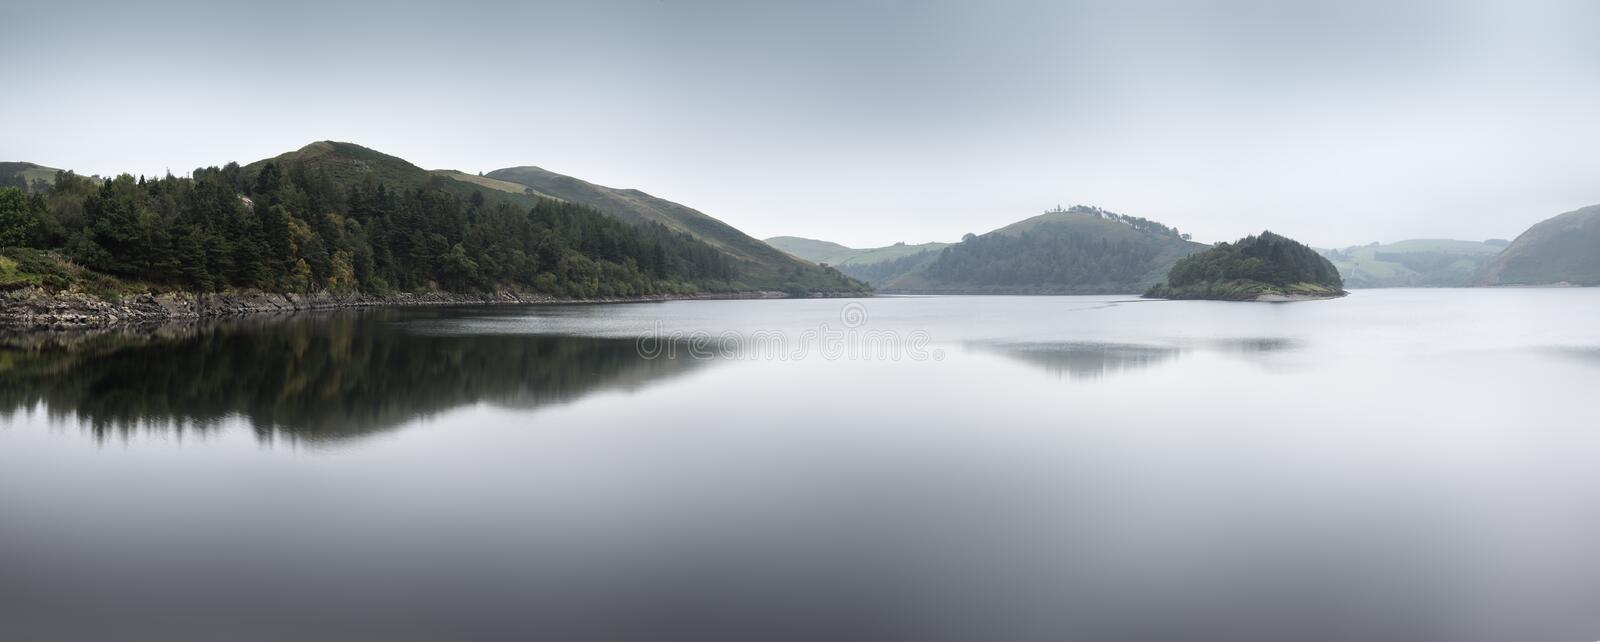 Misty morning landscape panorama over calm lake in Autumn royalty free stock photo